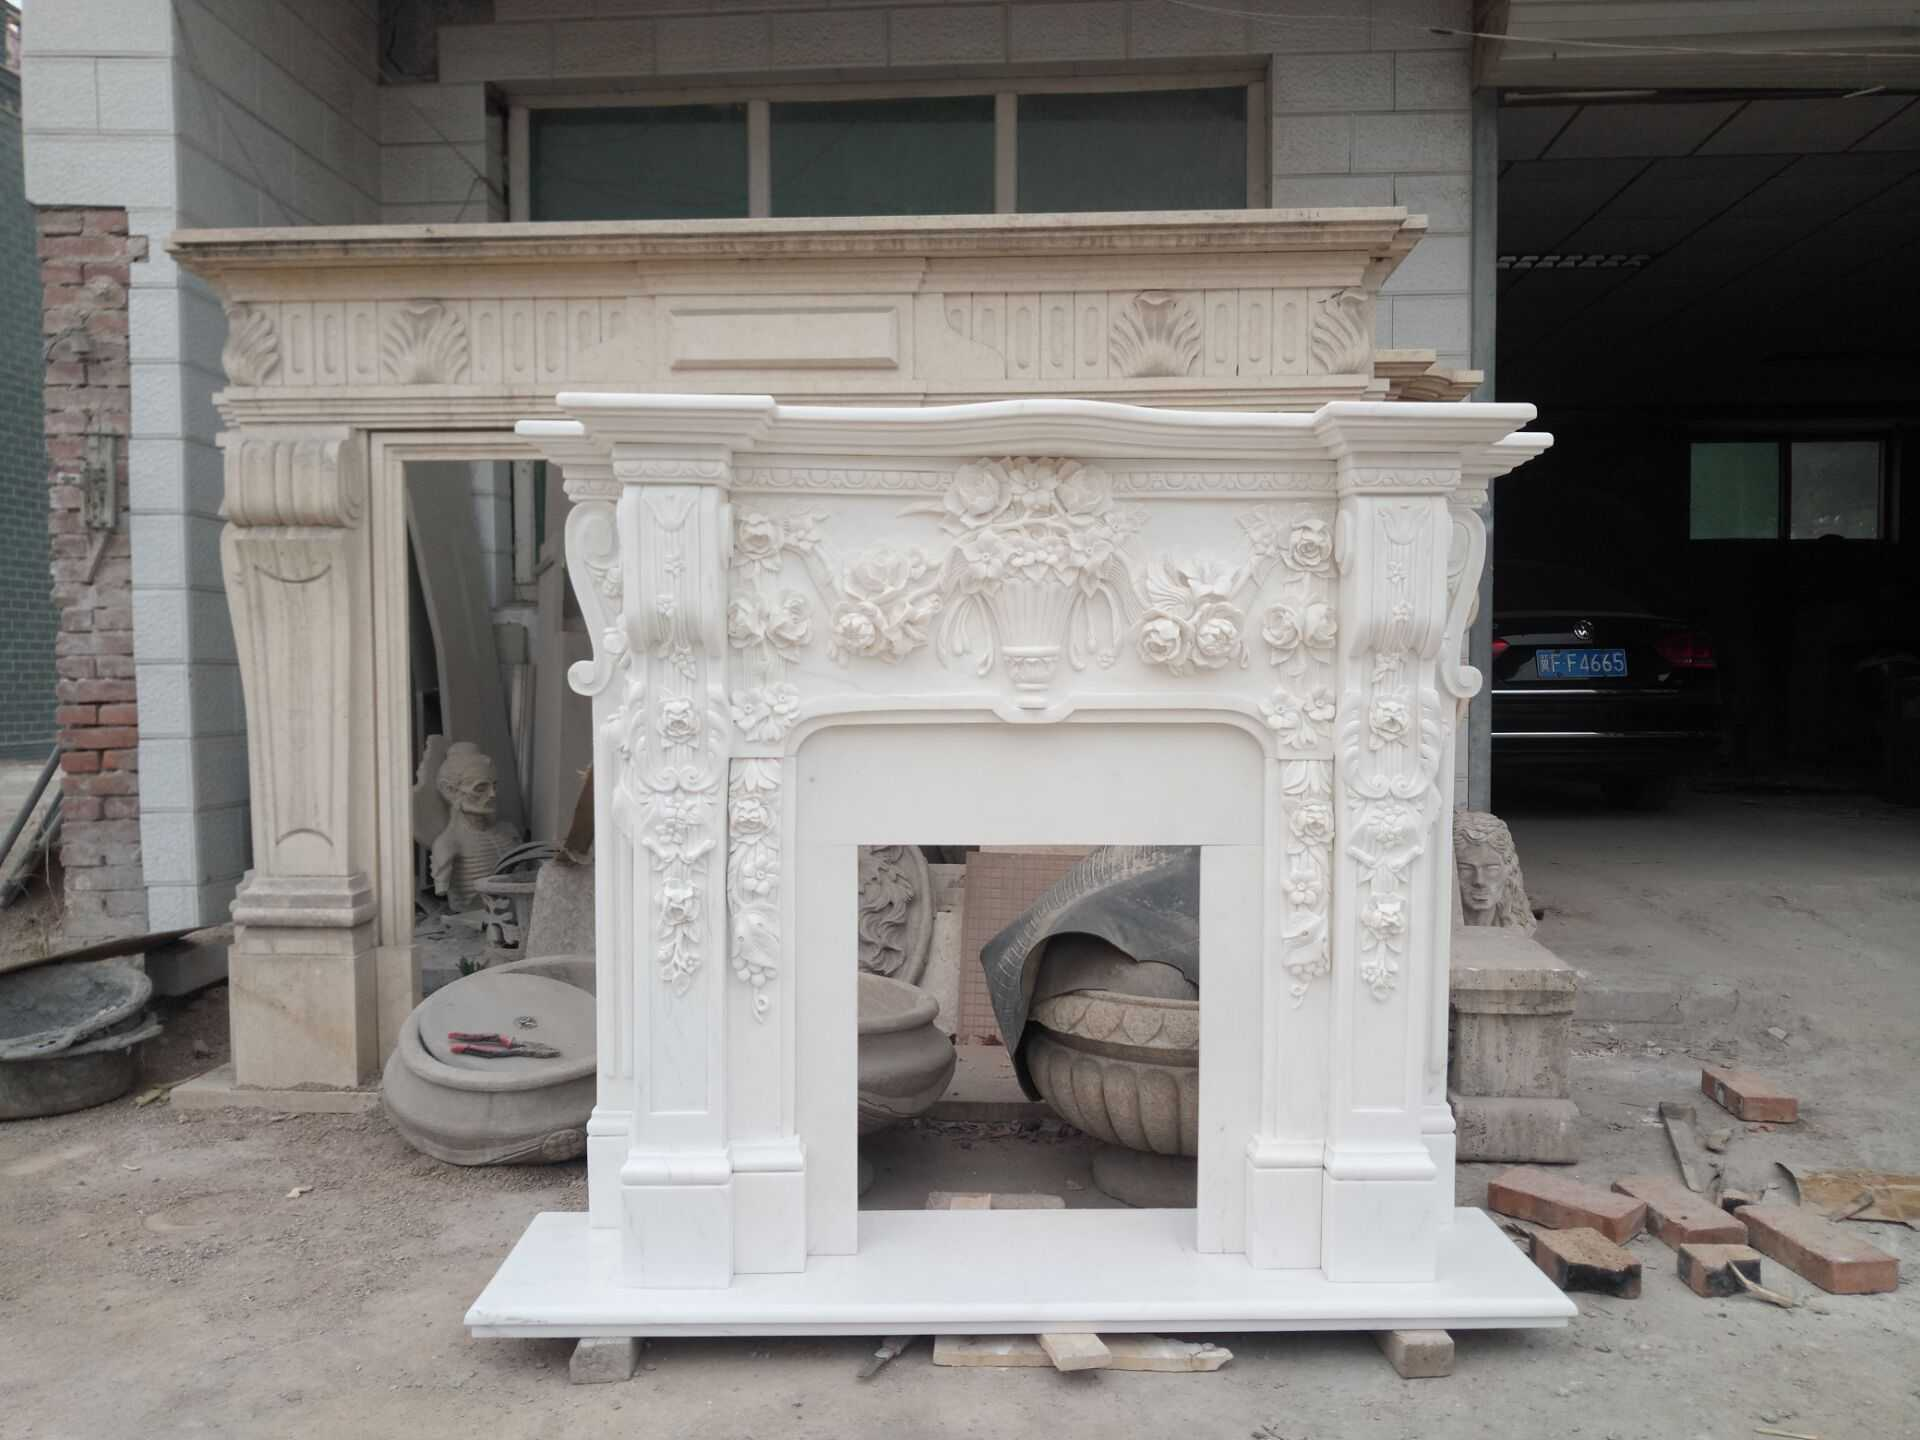 The White Marble Fireplace Mantel for Australian Client